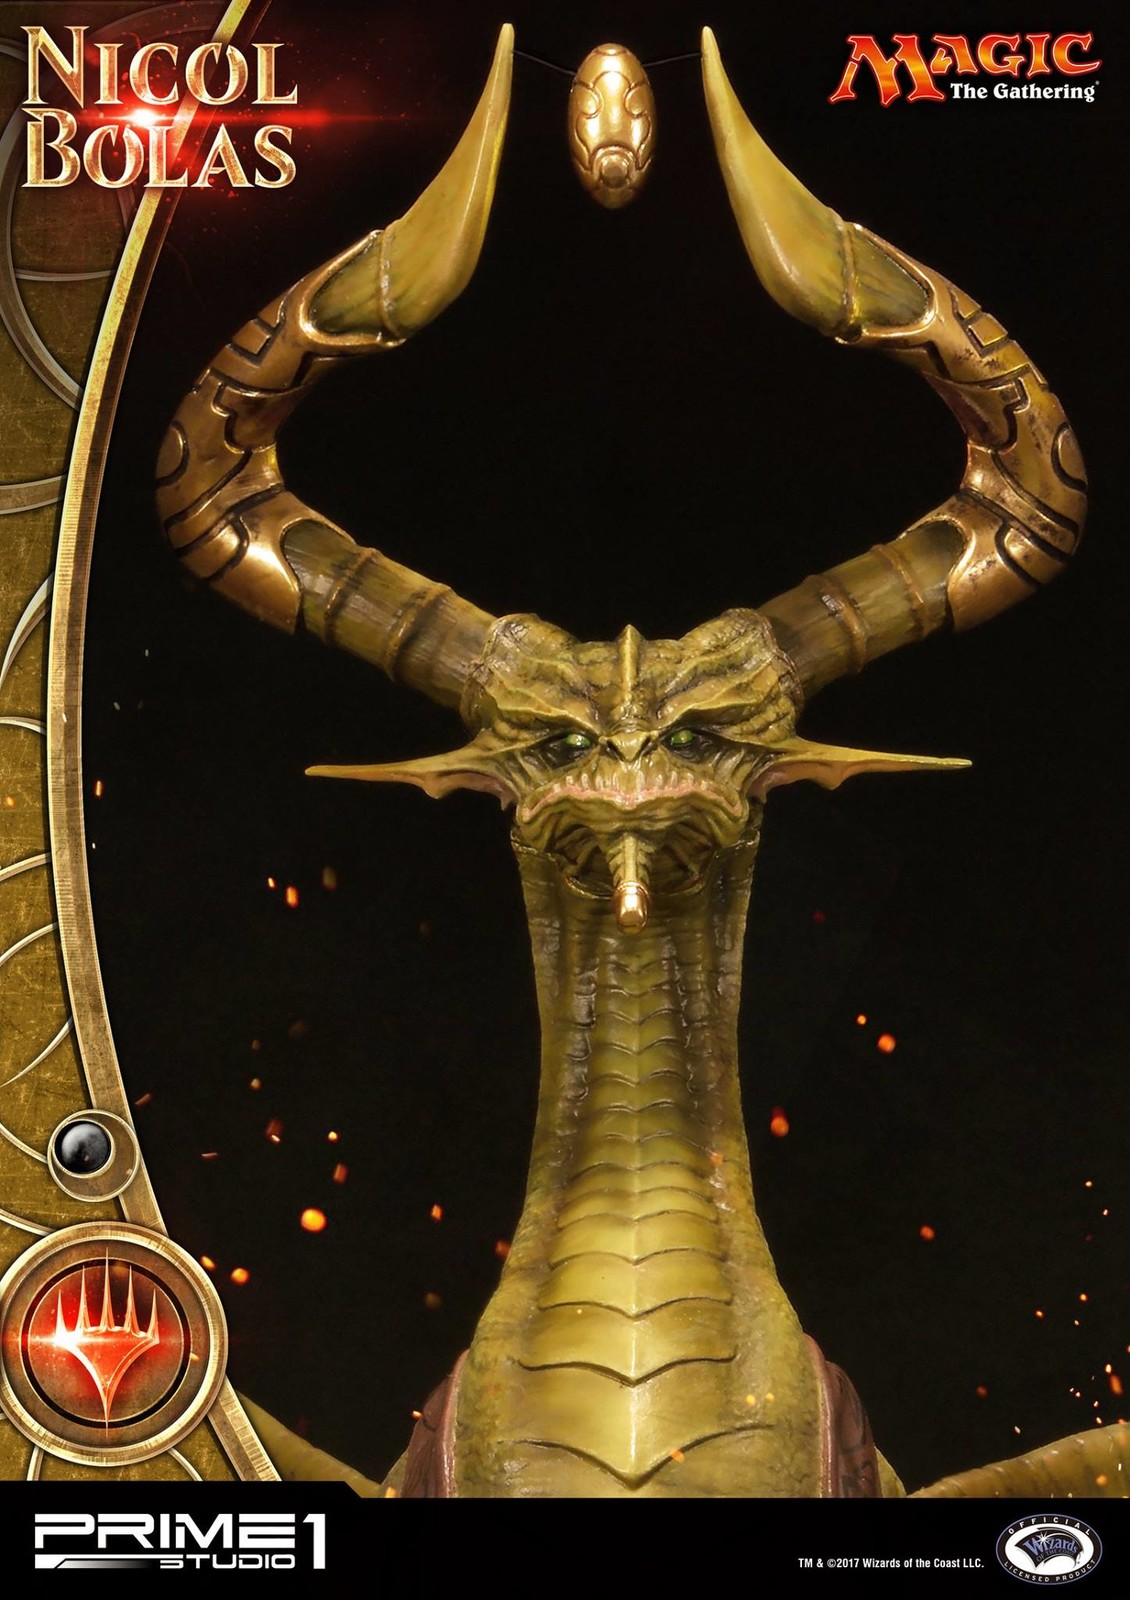 Prime 1 Studio - Magic : The Gathering - Nicol Bolas